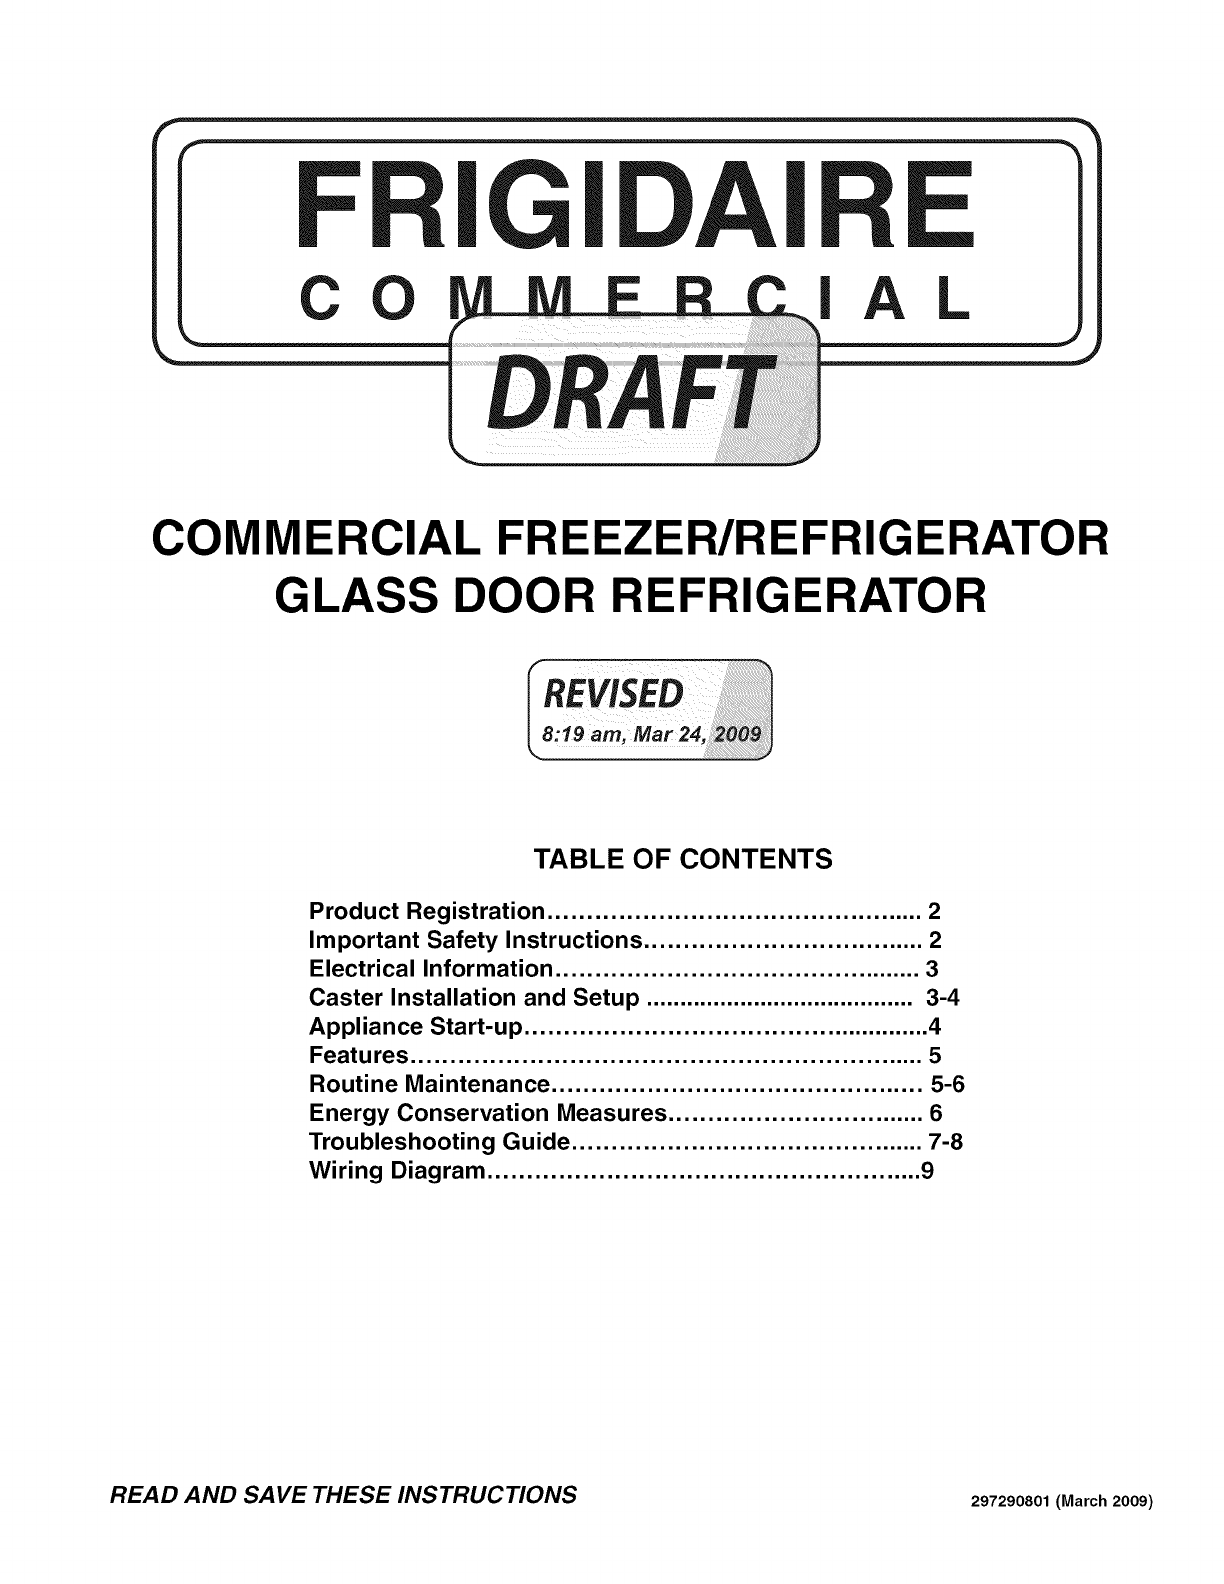 hight resolution of frigidaire fcgm201rfb2 user manual refrigerator freezer manuals and guides l0911500